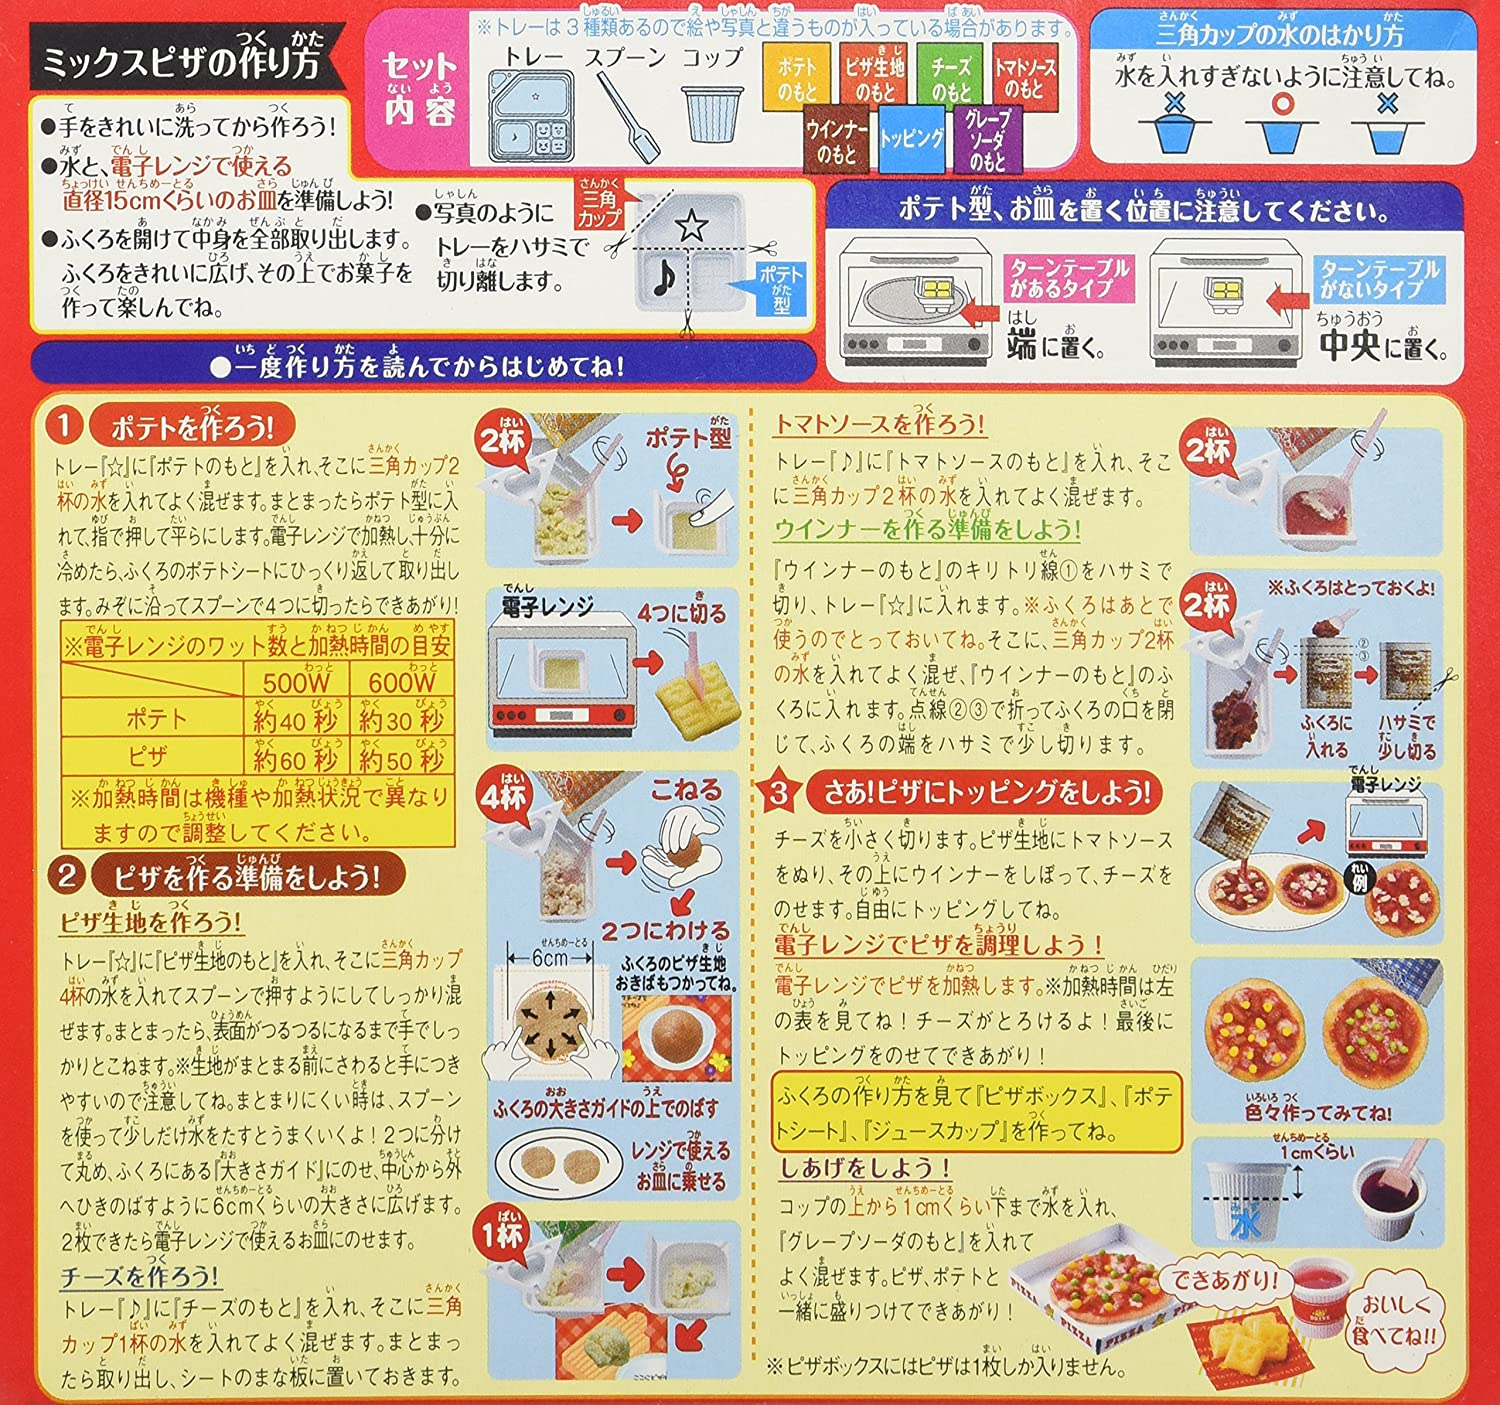 Popin cookin amazon - Amazon Com Mix Pizza Popin Cookin Kit Diy Candy By Kracie Grocery Gourmet Food